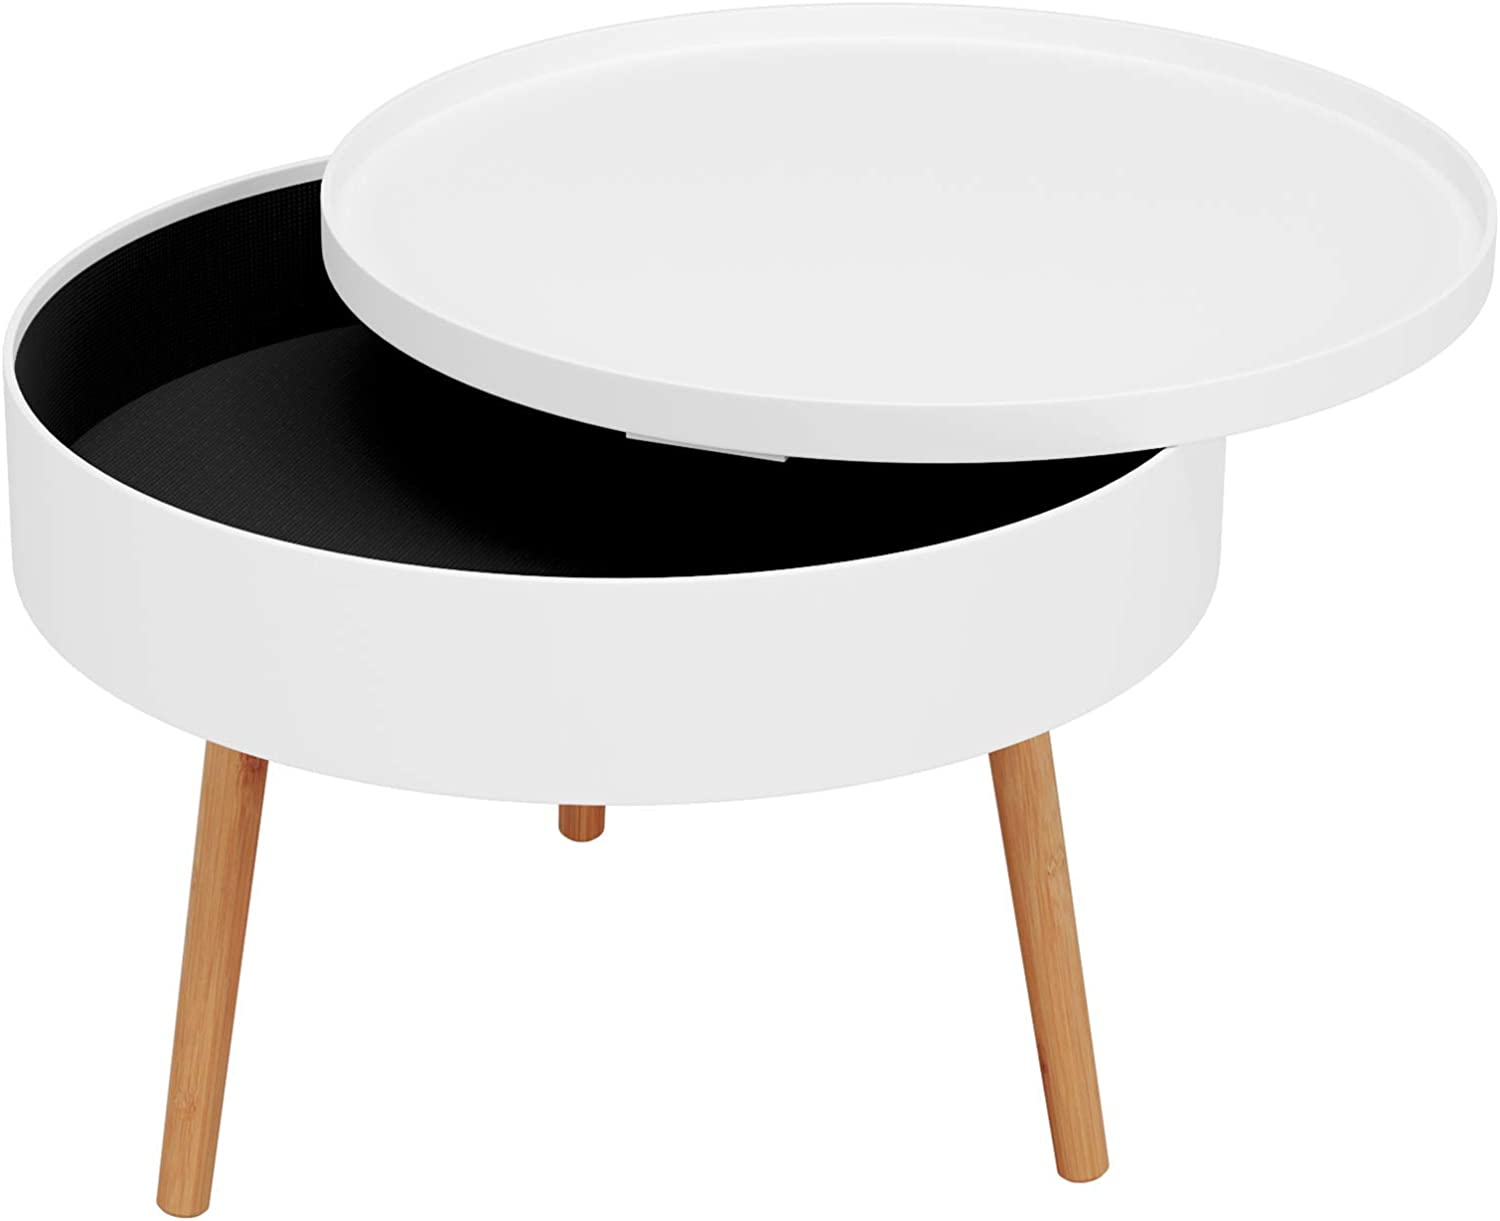 Homfa Round Coffee Table Living Room Side Table Sofa End Table with Removable Lid Storage Box Waiting Area Table White 60x60x46cm